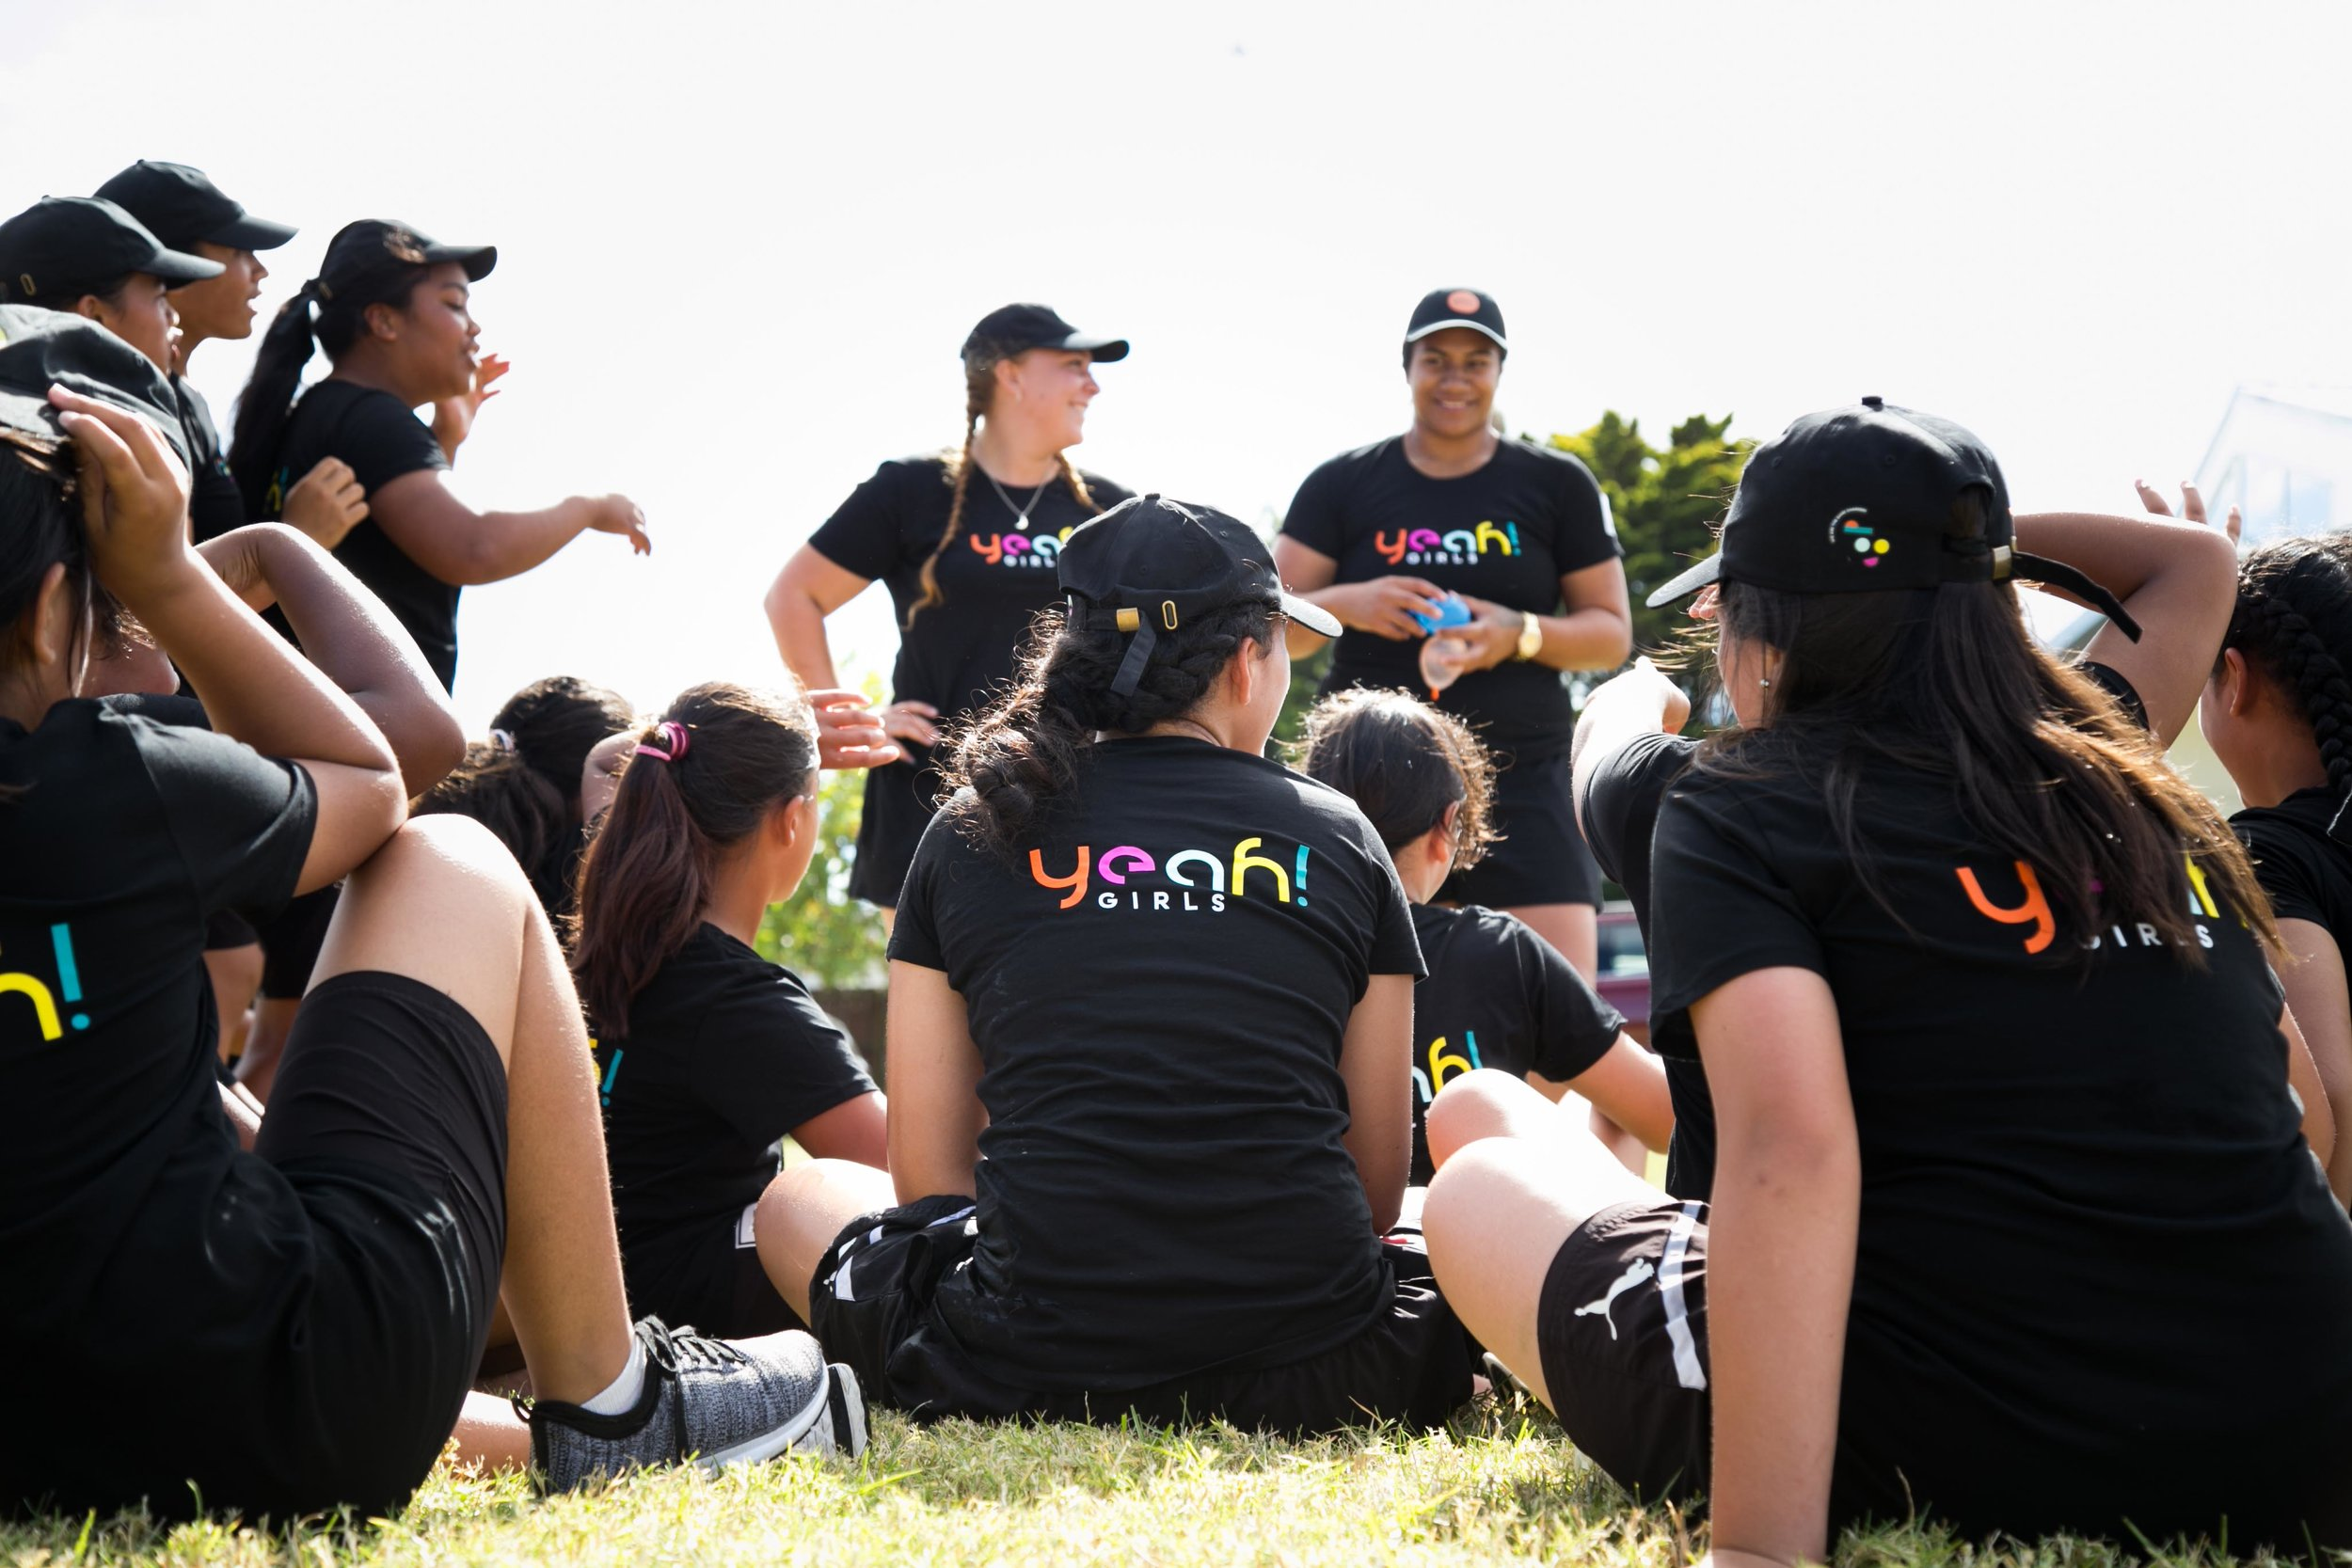 Check out YEAH! GIRLS - YEAH! GIRLS sessions are run all over New Zealand. Each session is an hour long, and run by handpicked Activators, trained in delivering super fun, active experiences taylored to girls . Click below to find your nearest Hub and scroll down to meet your Activator, they're super friendly.Learn more ➝